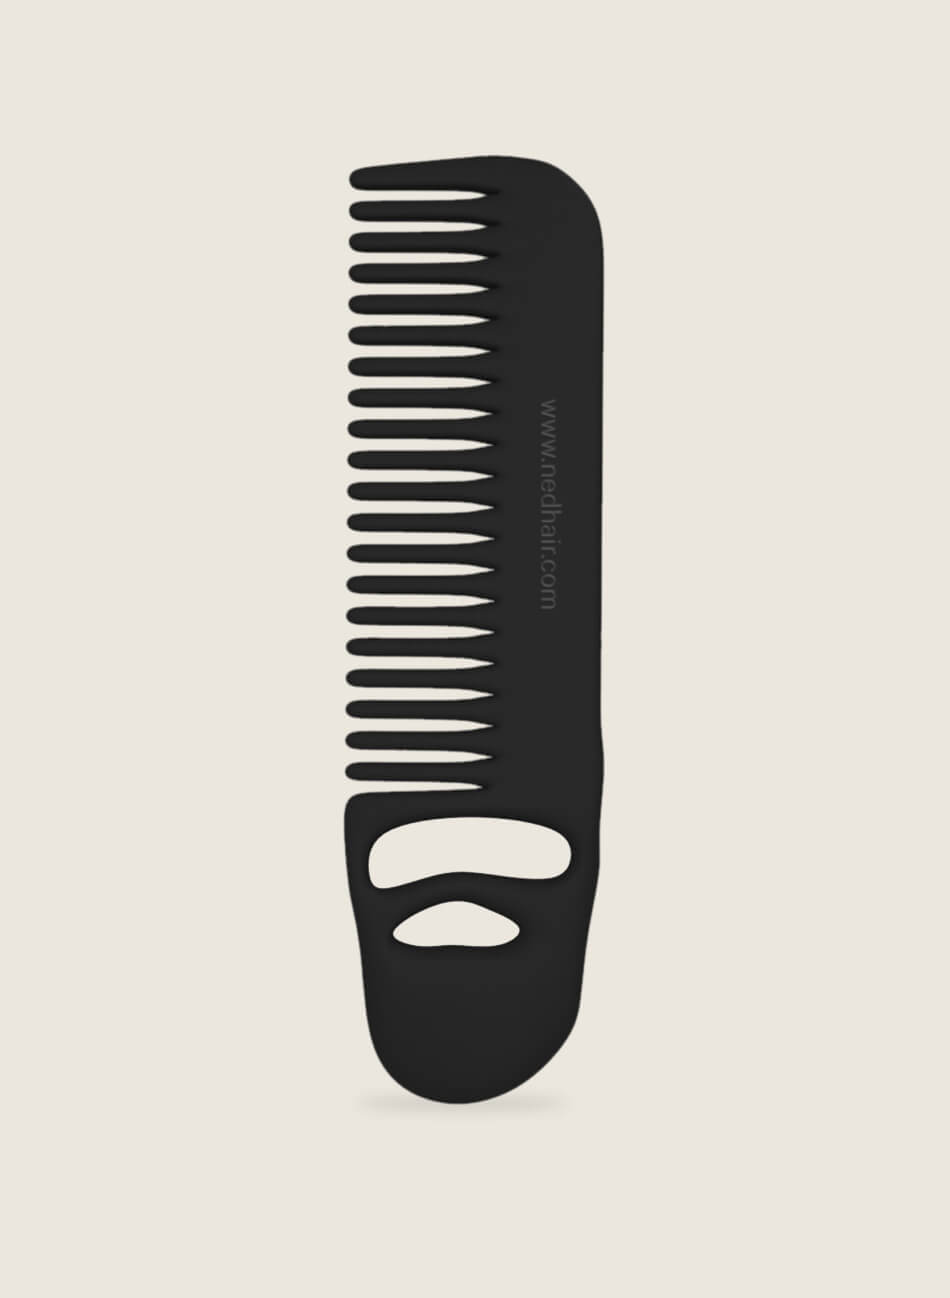 beard oil comb - NED beast comb - best beard comb australia - Men's comb